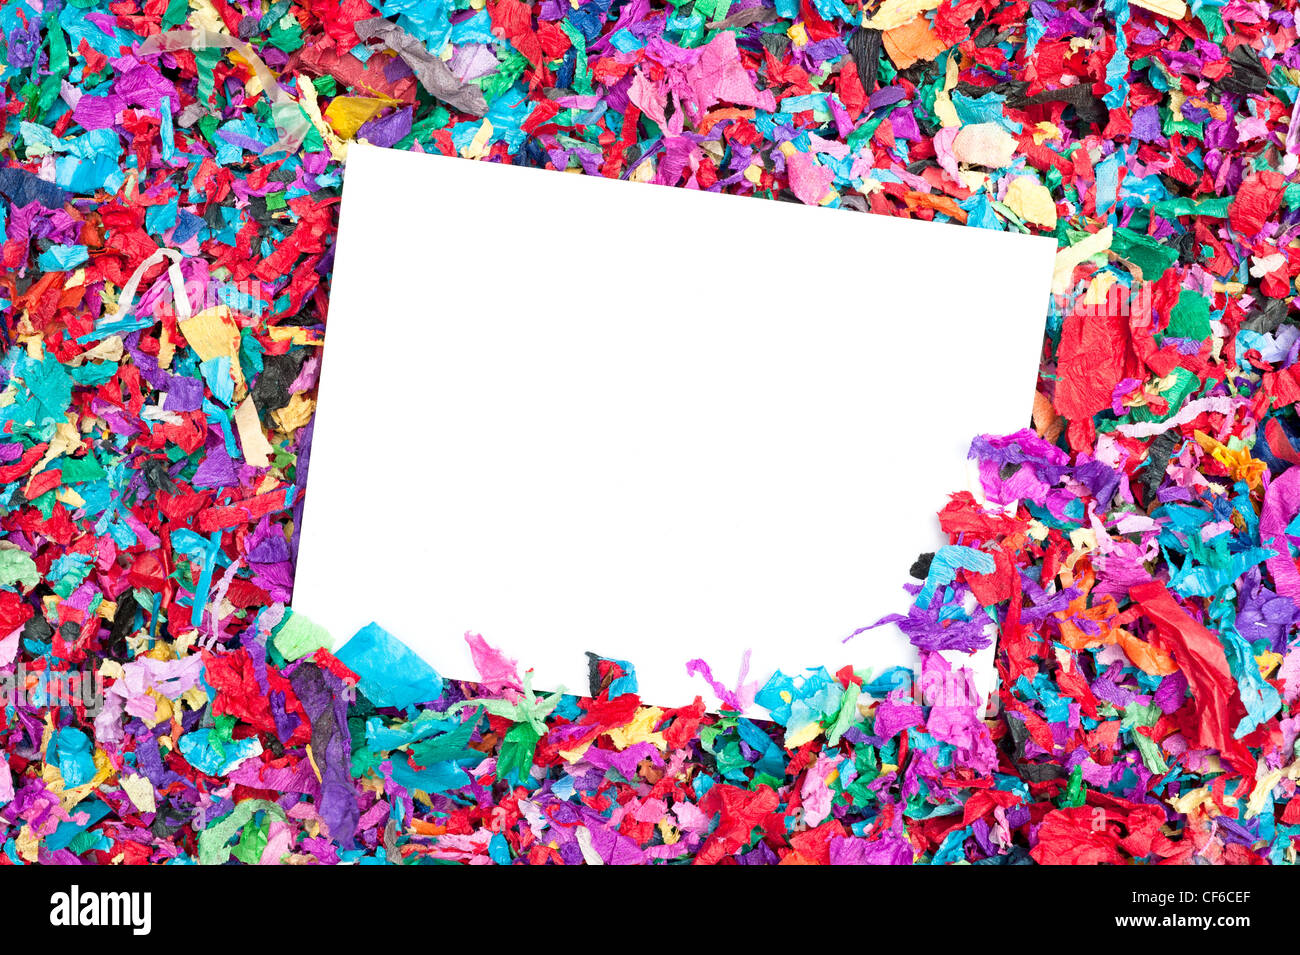 A blank invitation in a pile of colorful confetti. Good for any celebration event. Designers can place copy on the - Stock Image